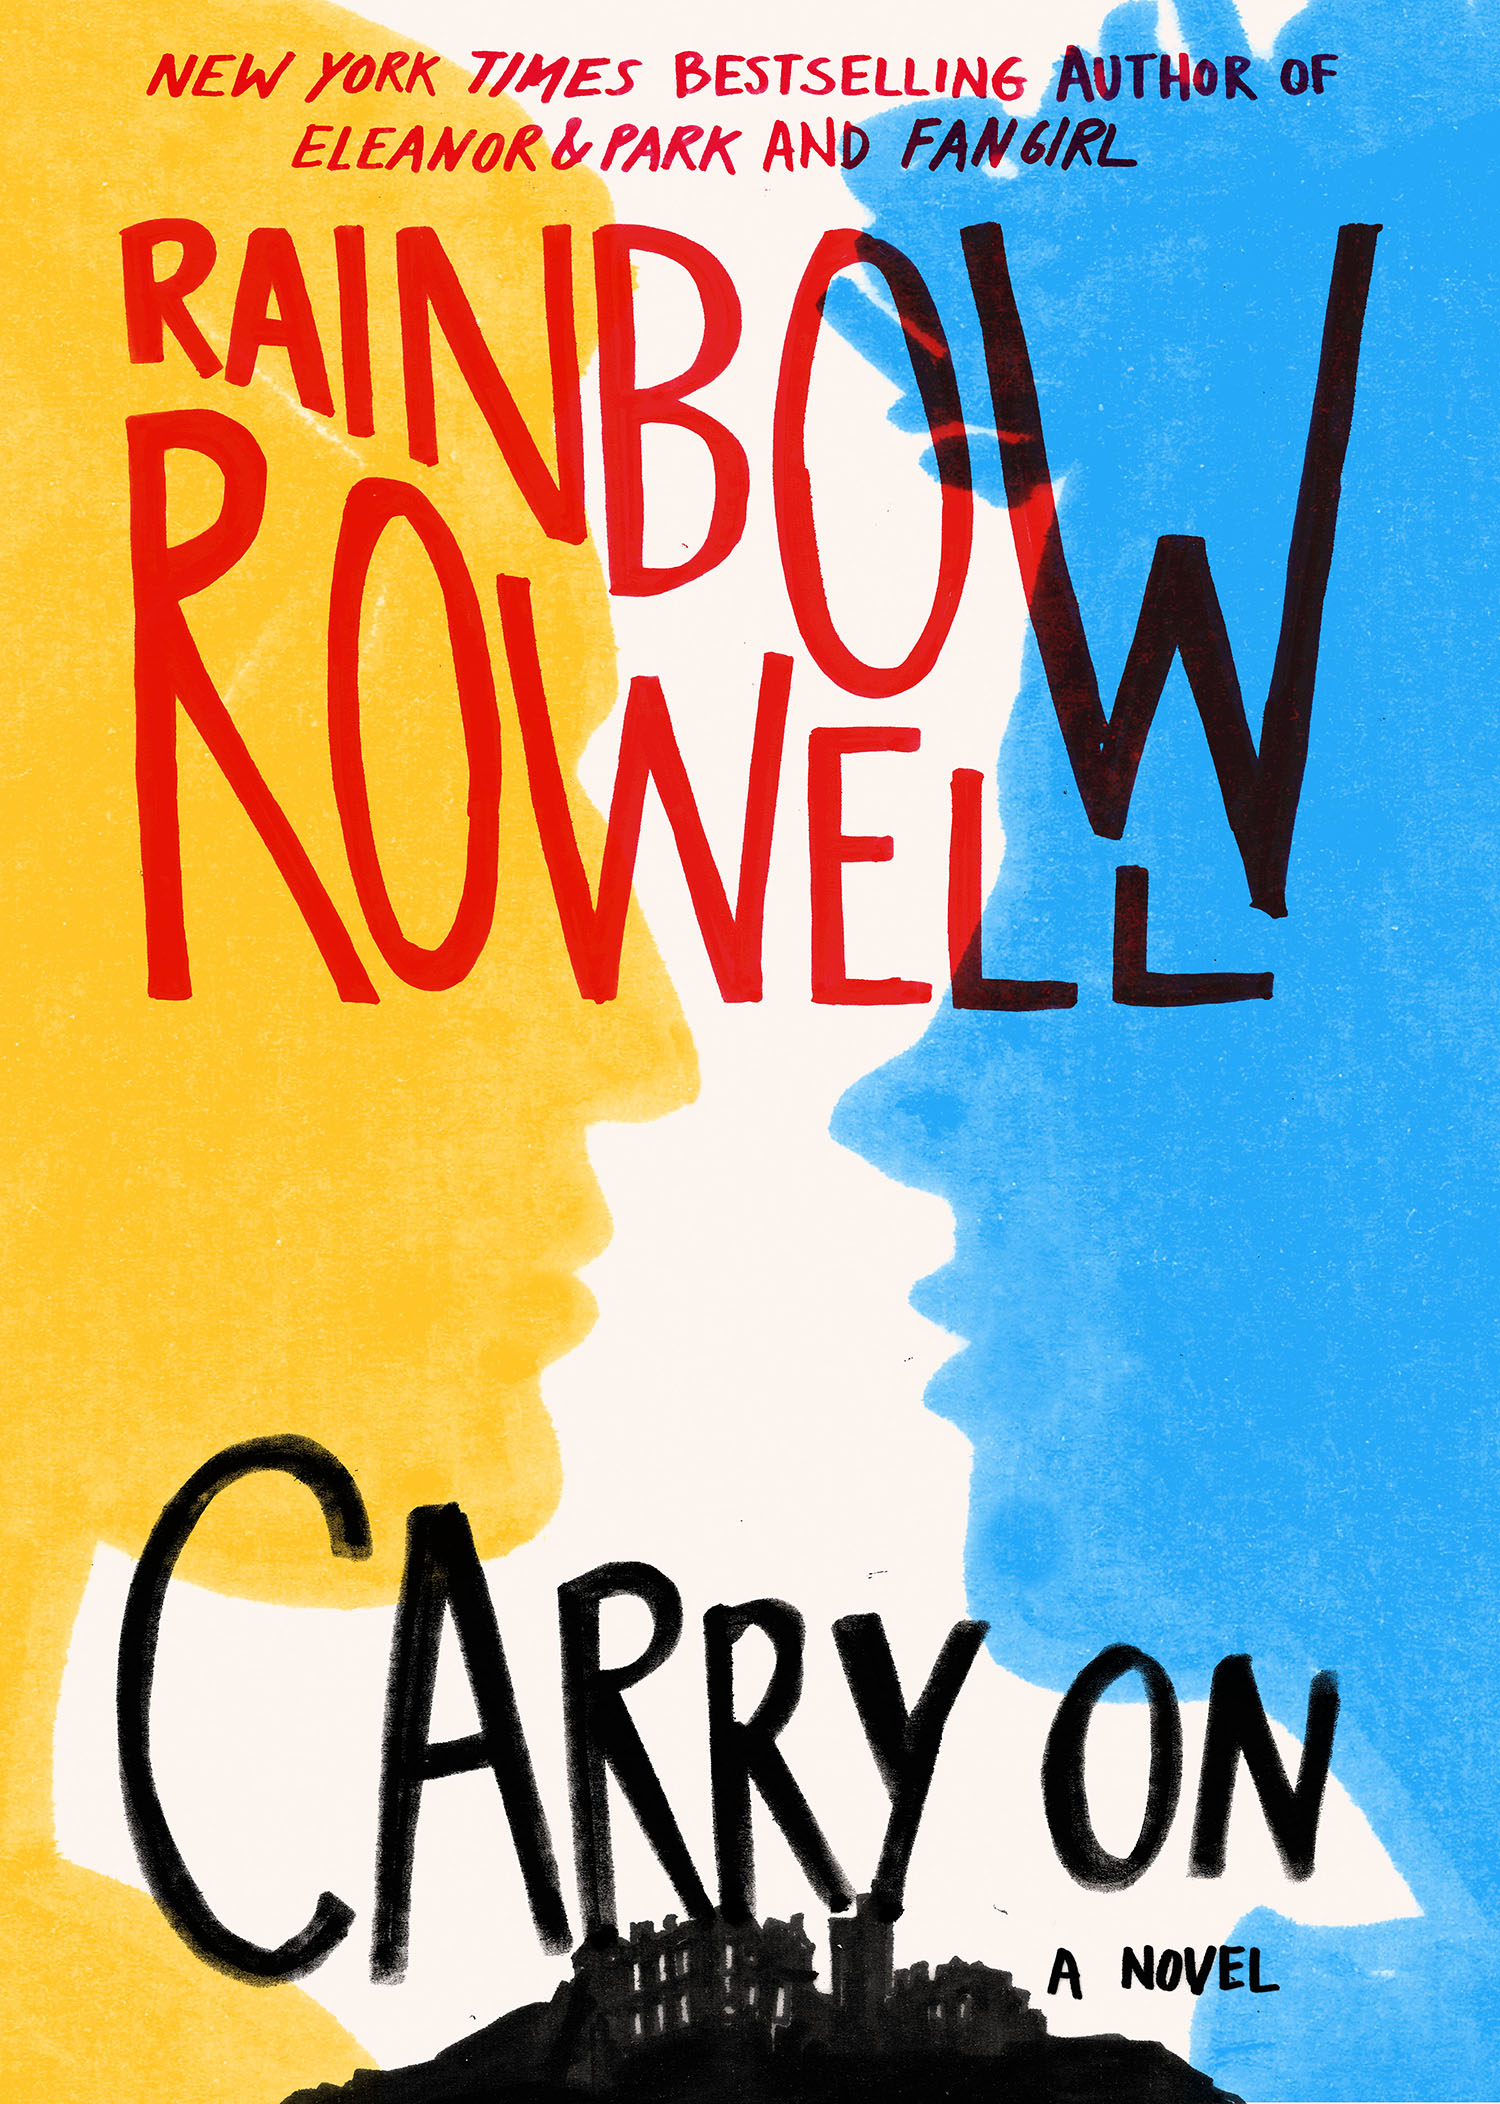 I can finally show you the 'Carry On' cover!